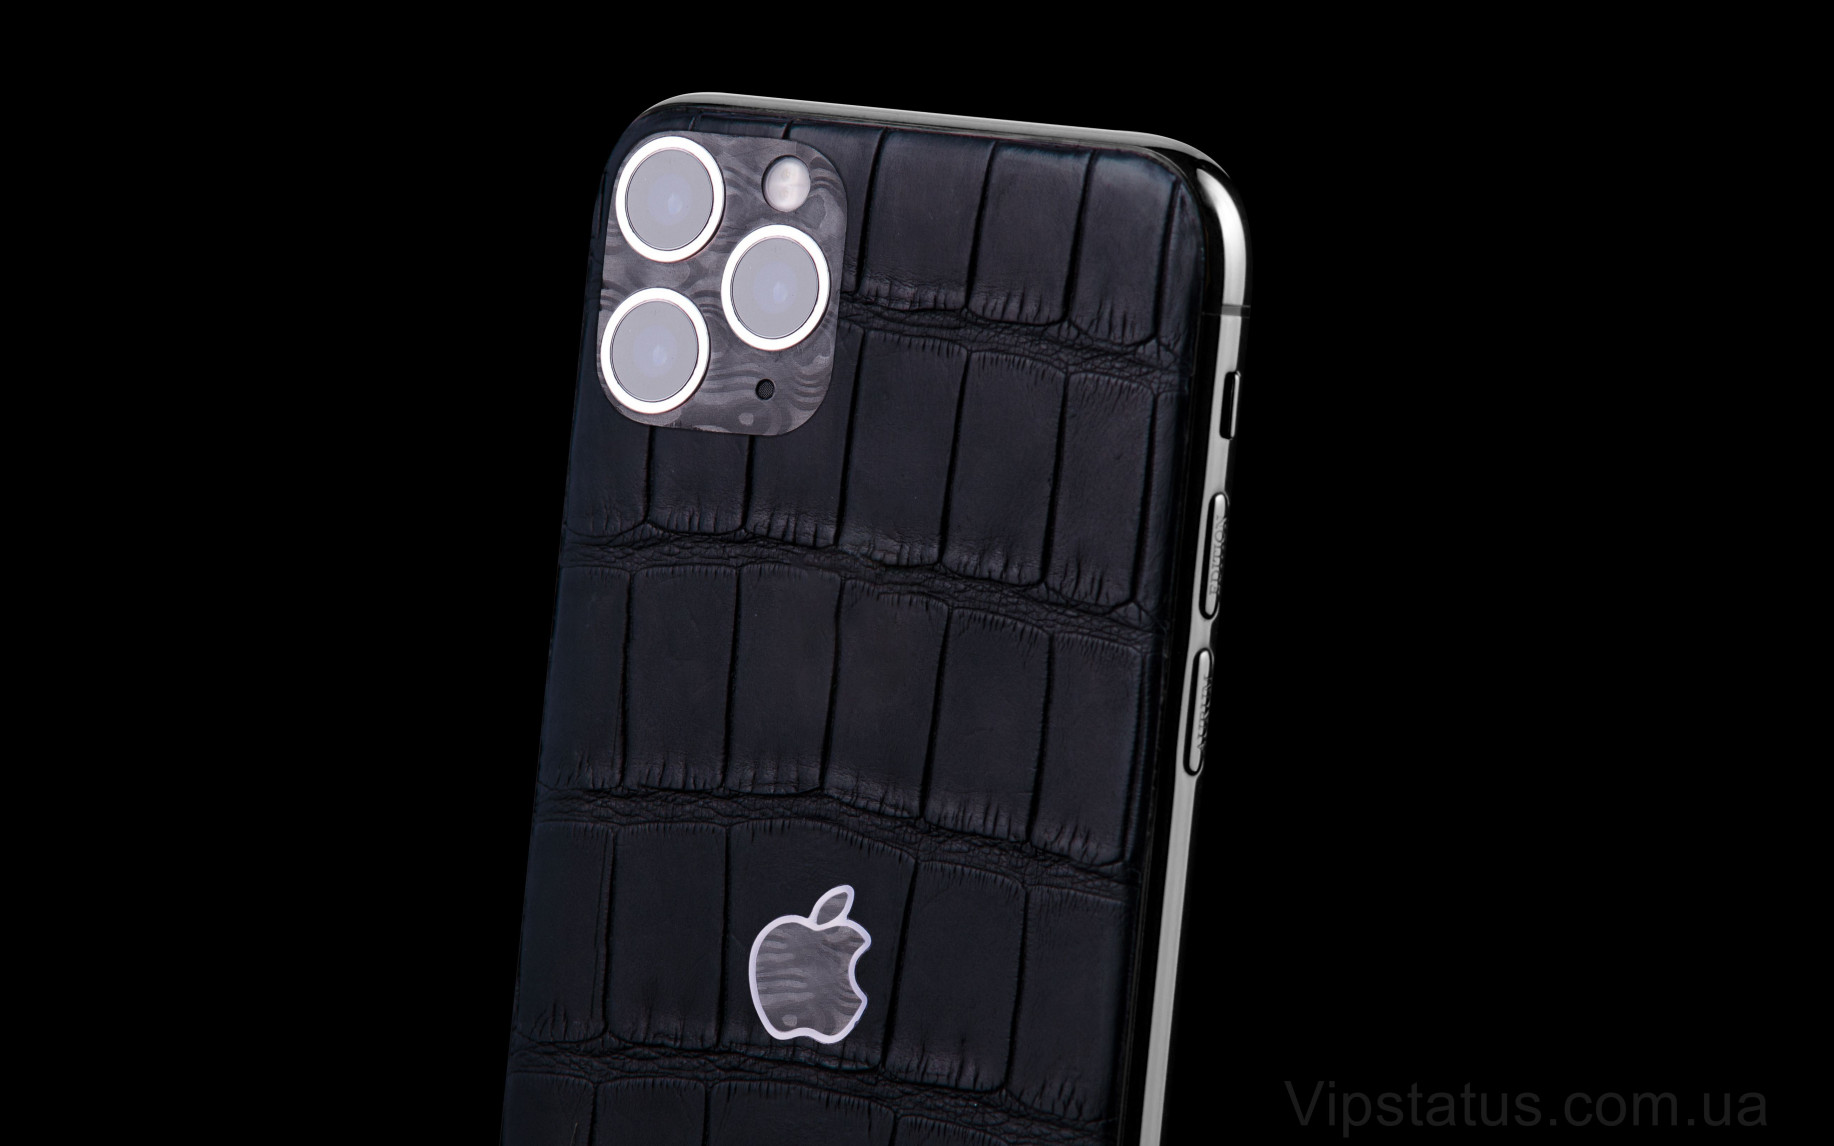 Elite Black Lord Carbon IPHONE 11 PRO 512 GB Black Lord Carbon IPHONE 11 PRO 512 GB image 3